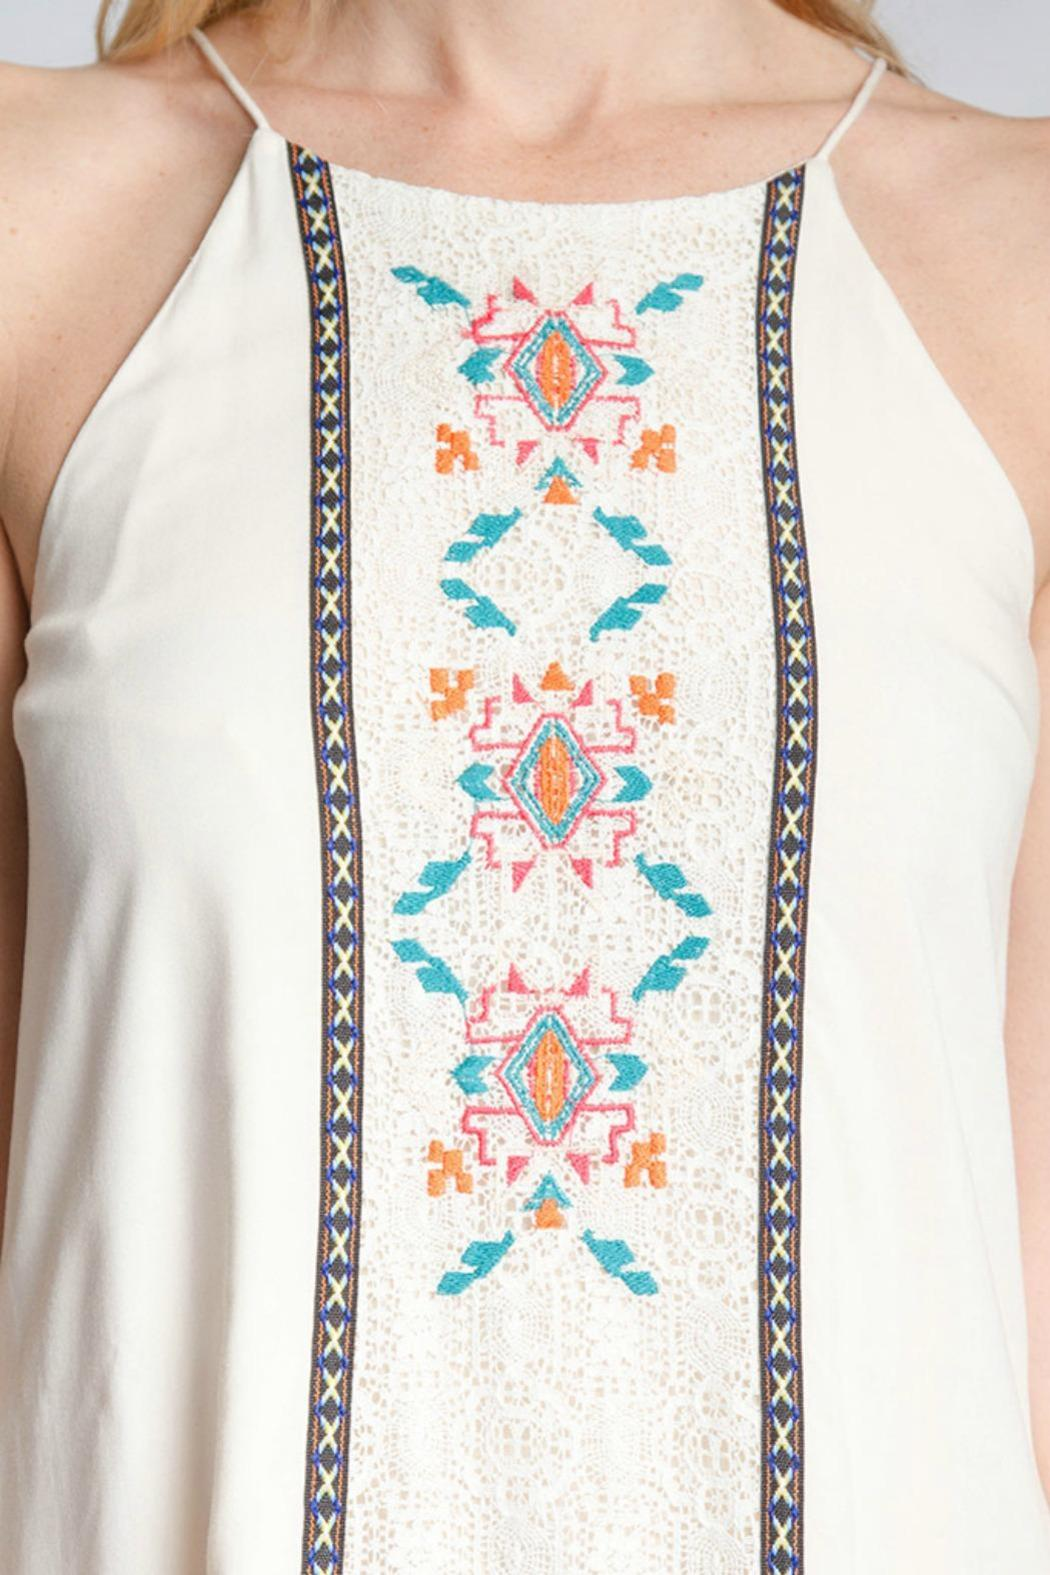 Ya los angeles cream embroidered dress from delaware by